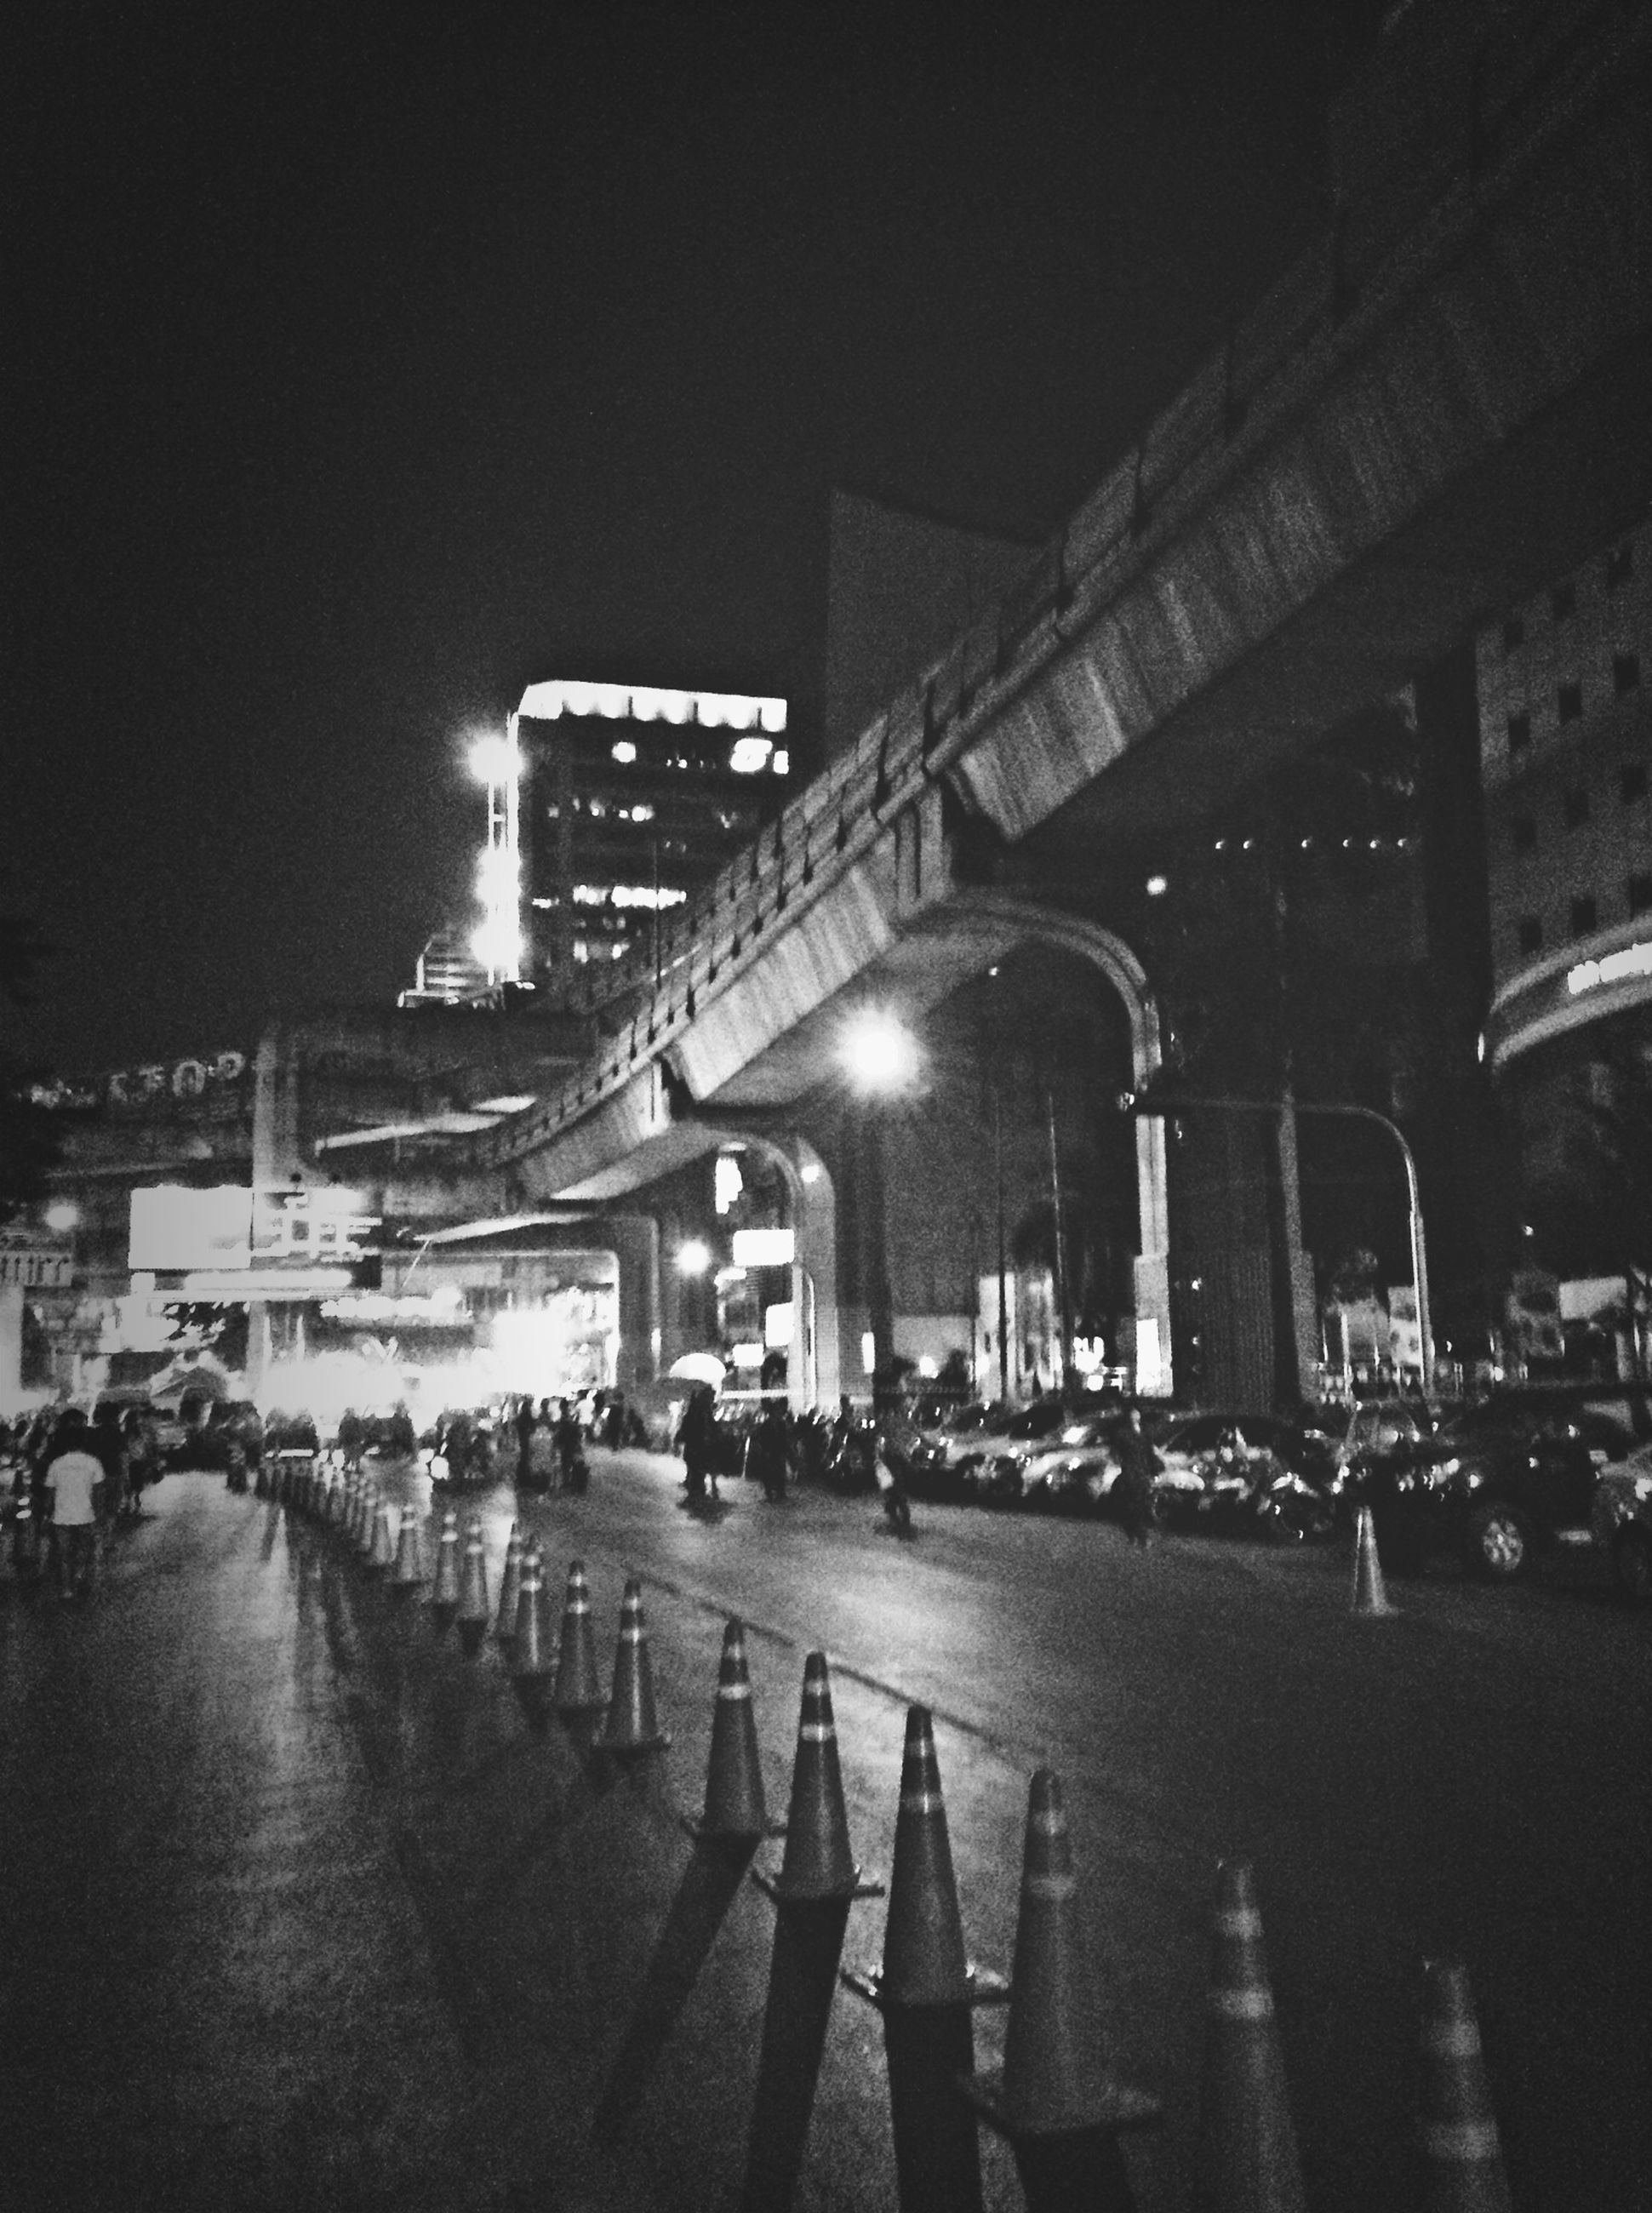 architecture, built structure, building exterior, illuminated, night, city, bridge - man made structure, transportation, connection, city life, street, street light, sky, river, large group of people, engineering, bridge, travel destinations, outdoors, incidental people